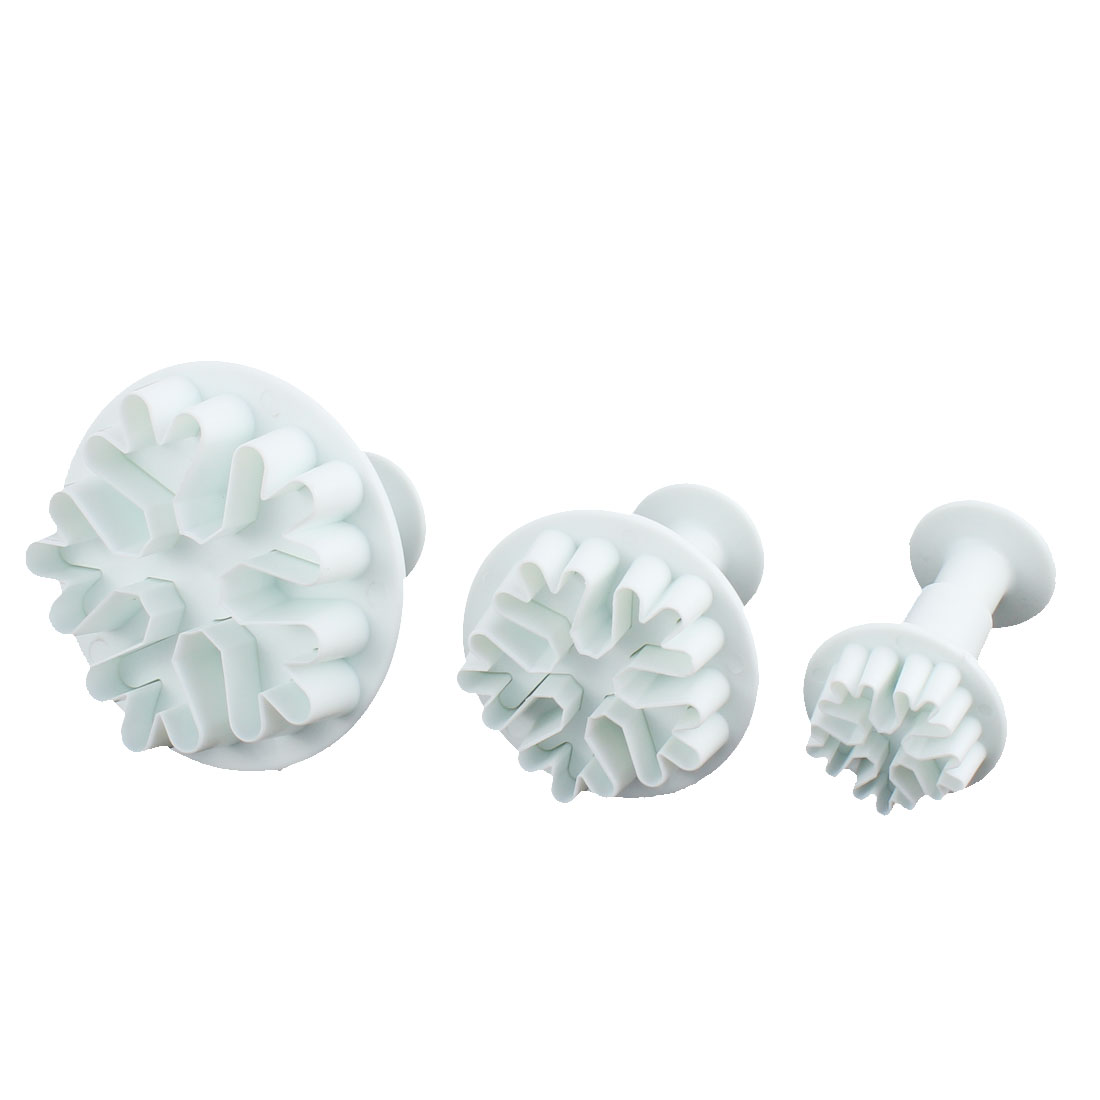 Snowflake Shaped Fondant Cake Decorating Mold Mould Plunger Cutter 3 in 1